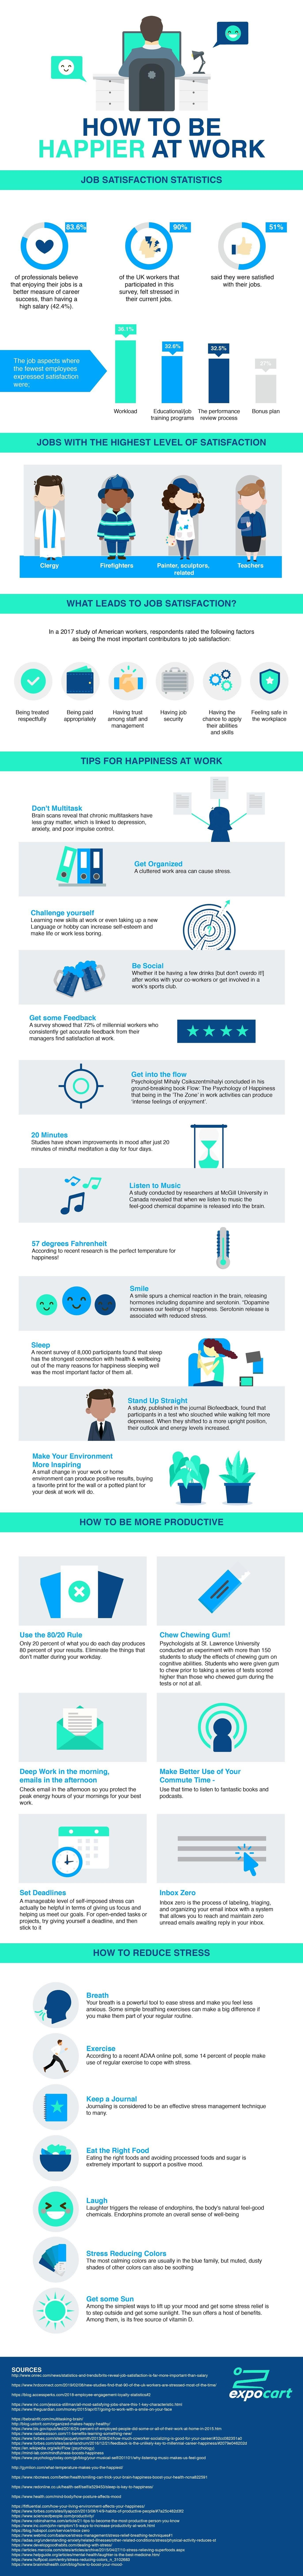 How to Work Happy #infographic